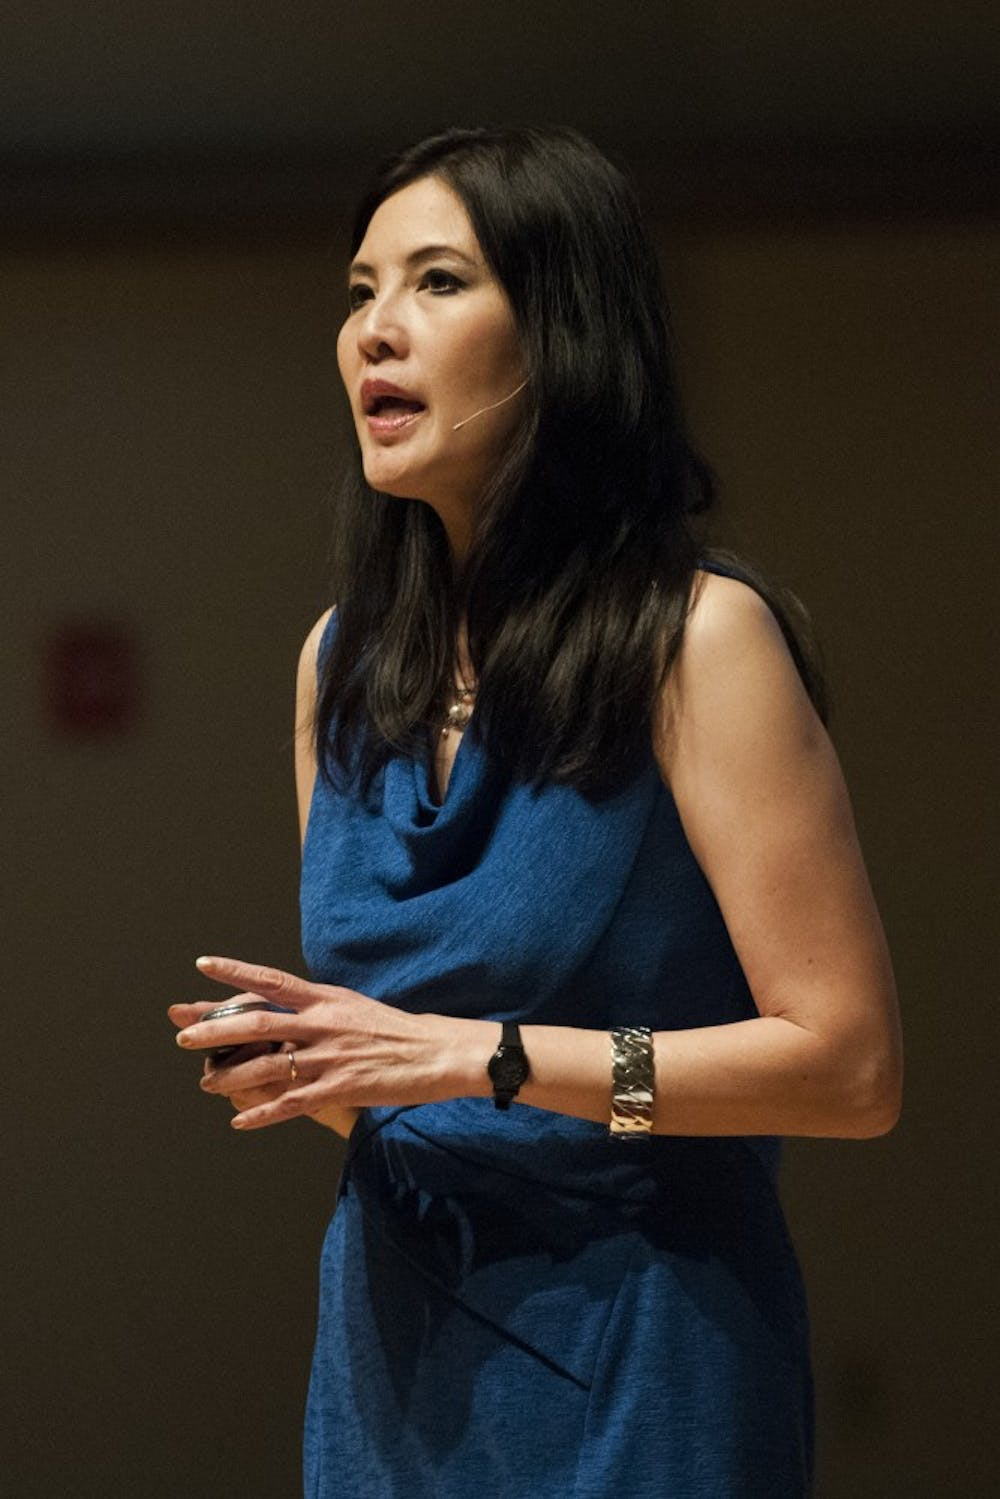 Sheryl WuDunn encouraged volunteerism and community activism at her talk on Monday at Pruis Hall. WuDann is the author of